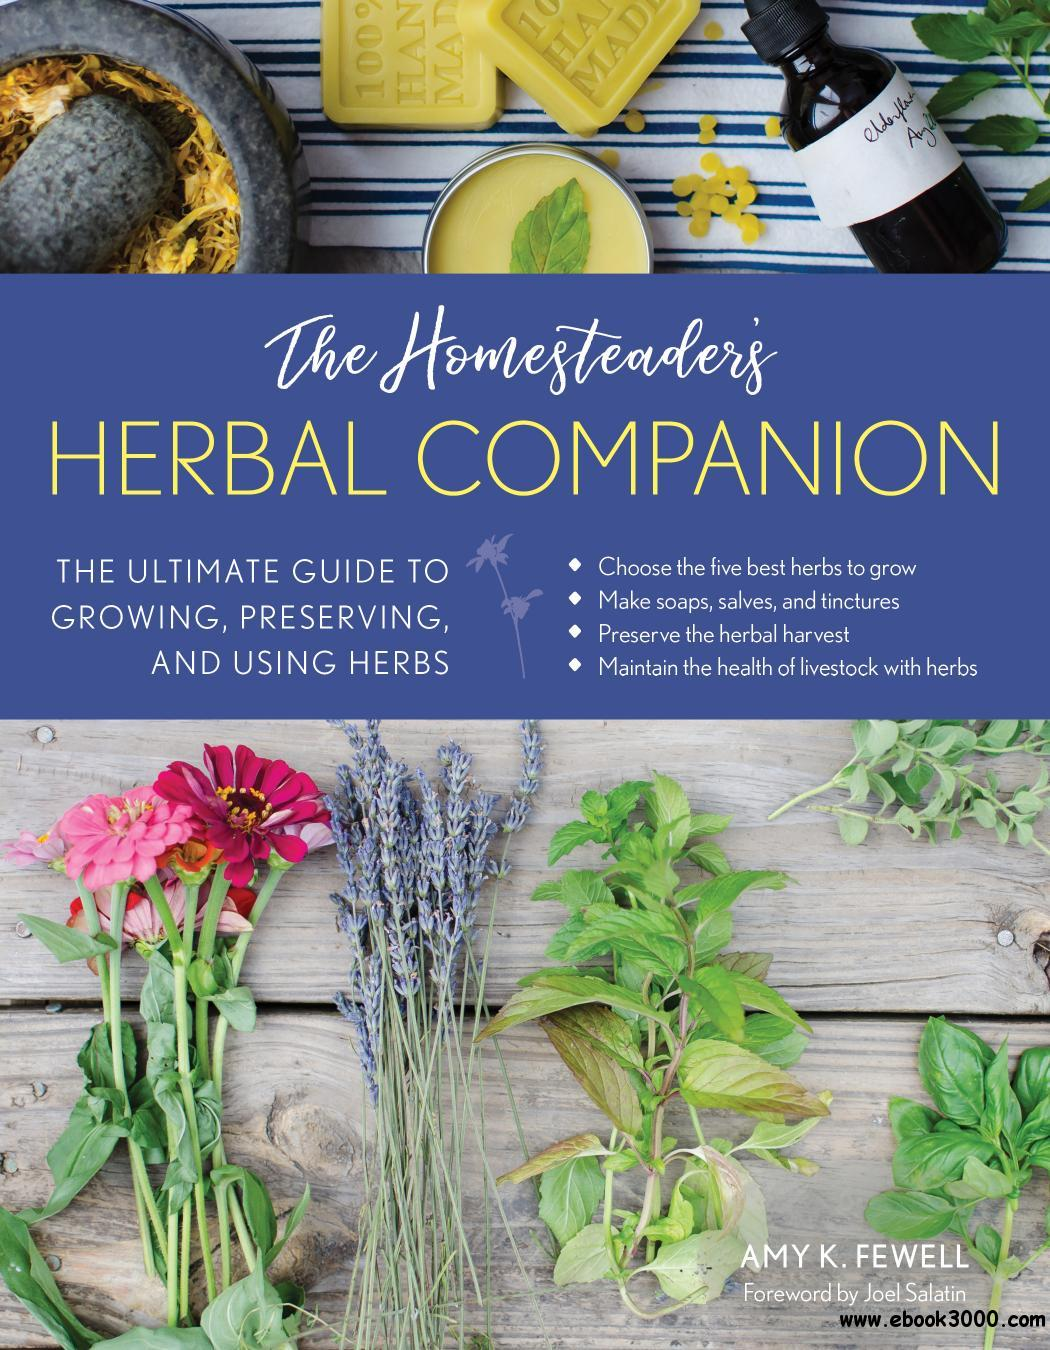 The Homesteader's Herbal Companion: The Ultimate Guide to Growing